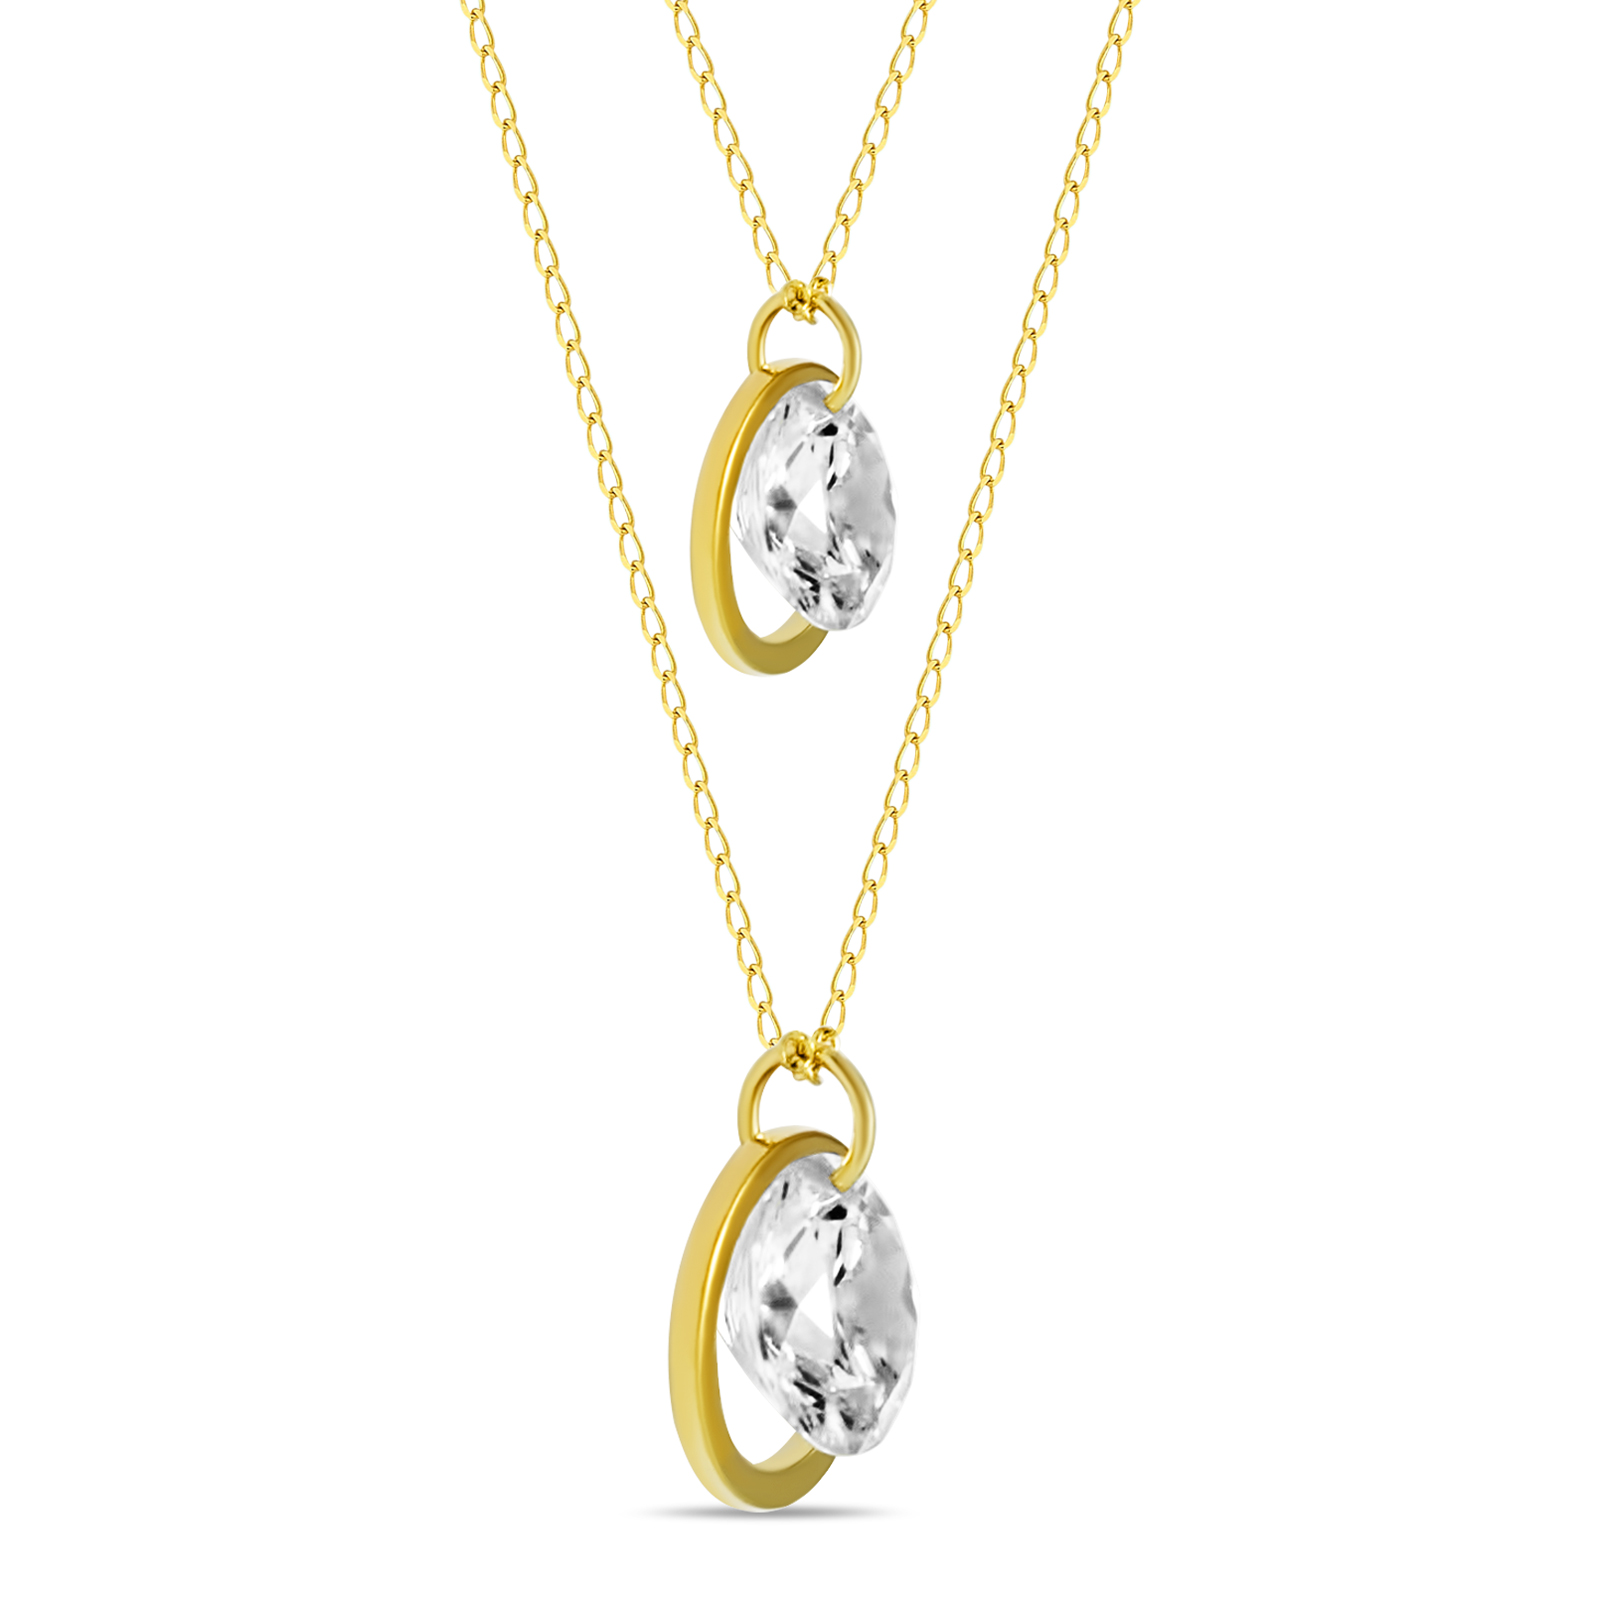 77b994a864b75 Circle Lariat Necklace w CZ Crystals Gold Plated Two Circle Necklace,  Modern Minimal Layered Necklace